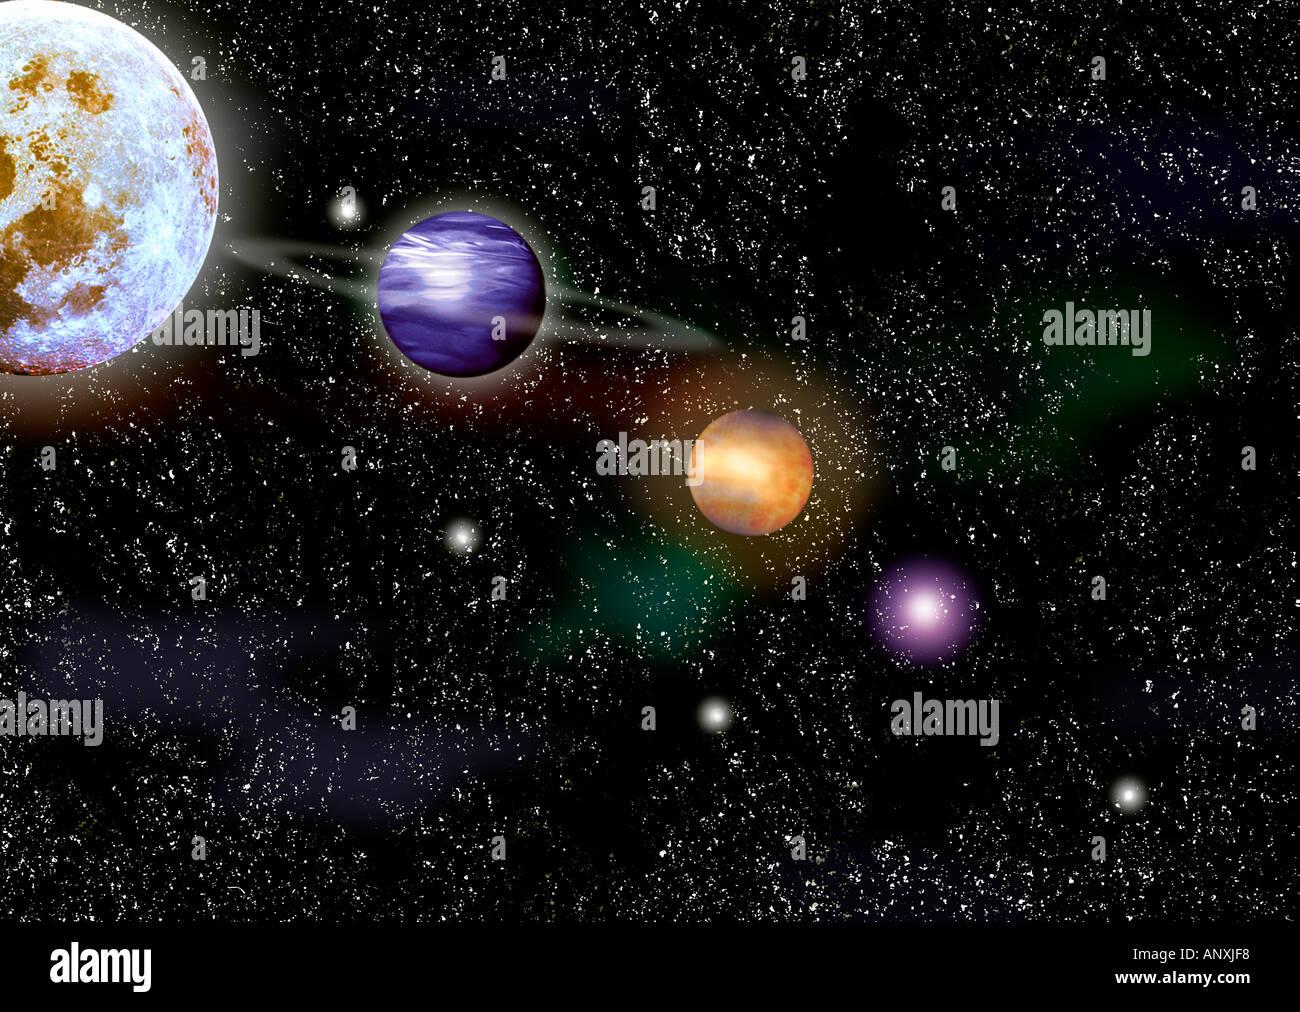 Space Cosmos Photo Illustration Showing Planets Moon And Stars Graphic Suns Universe